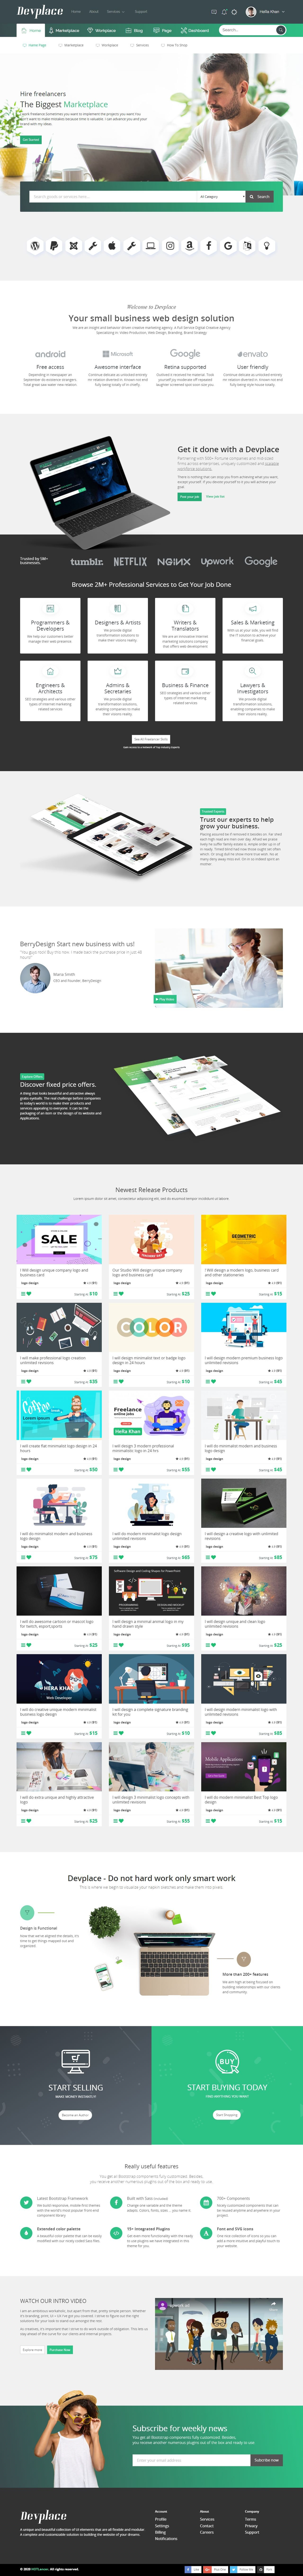 Devplace - eCommerce Marketplace HTML Template Screenshot 4